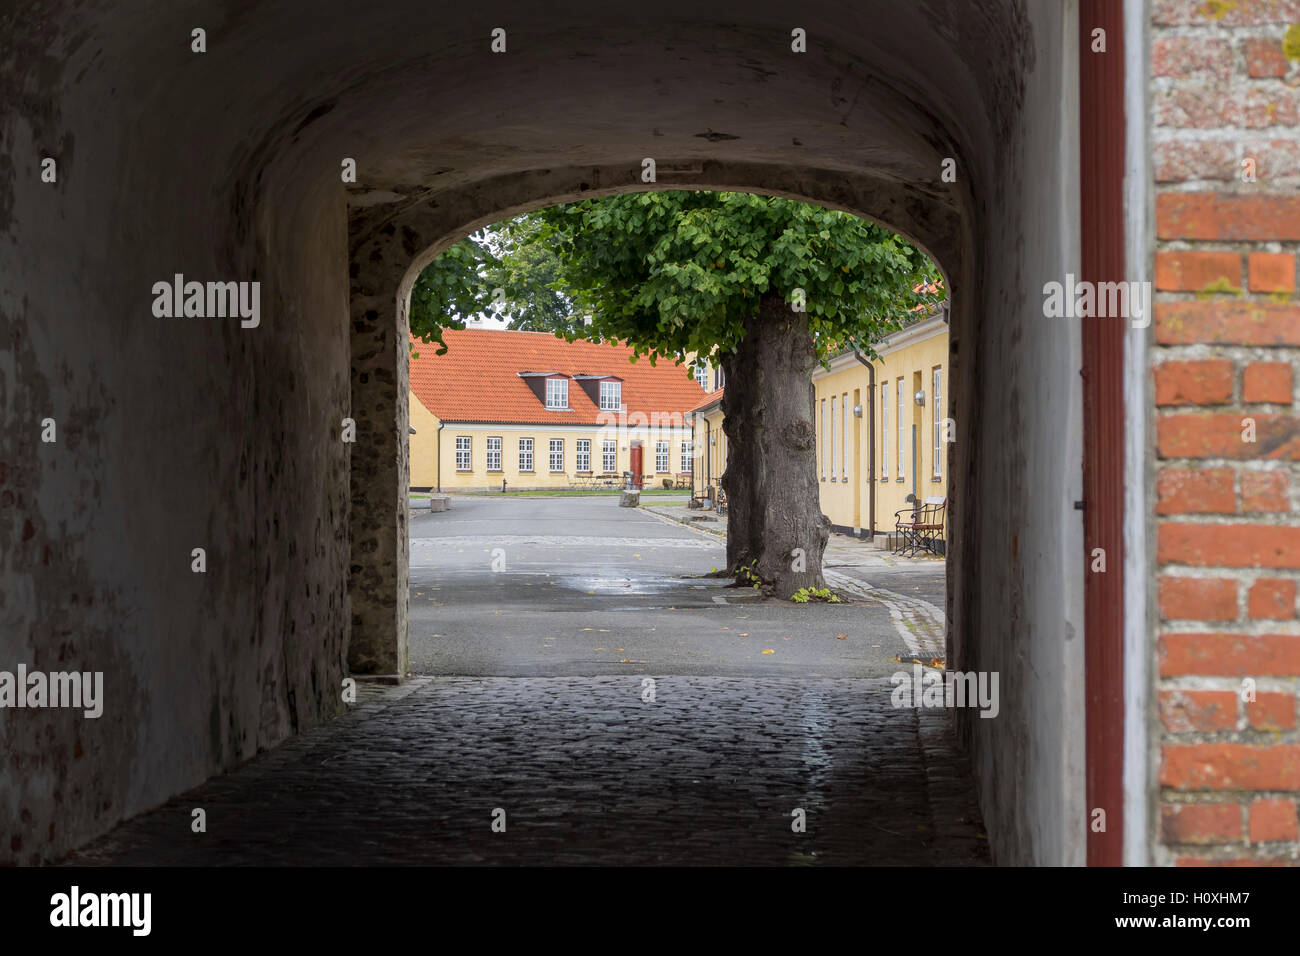 The historical Kronborg Castle at Helsingor, Denmark - Stock Image